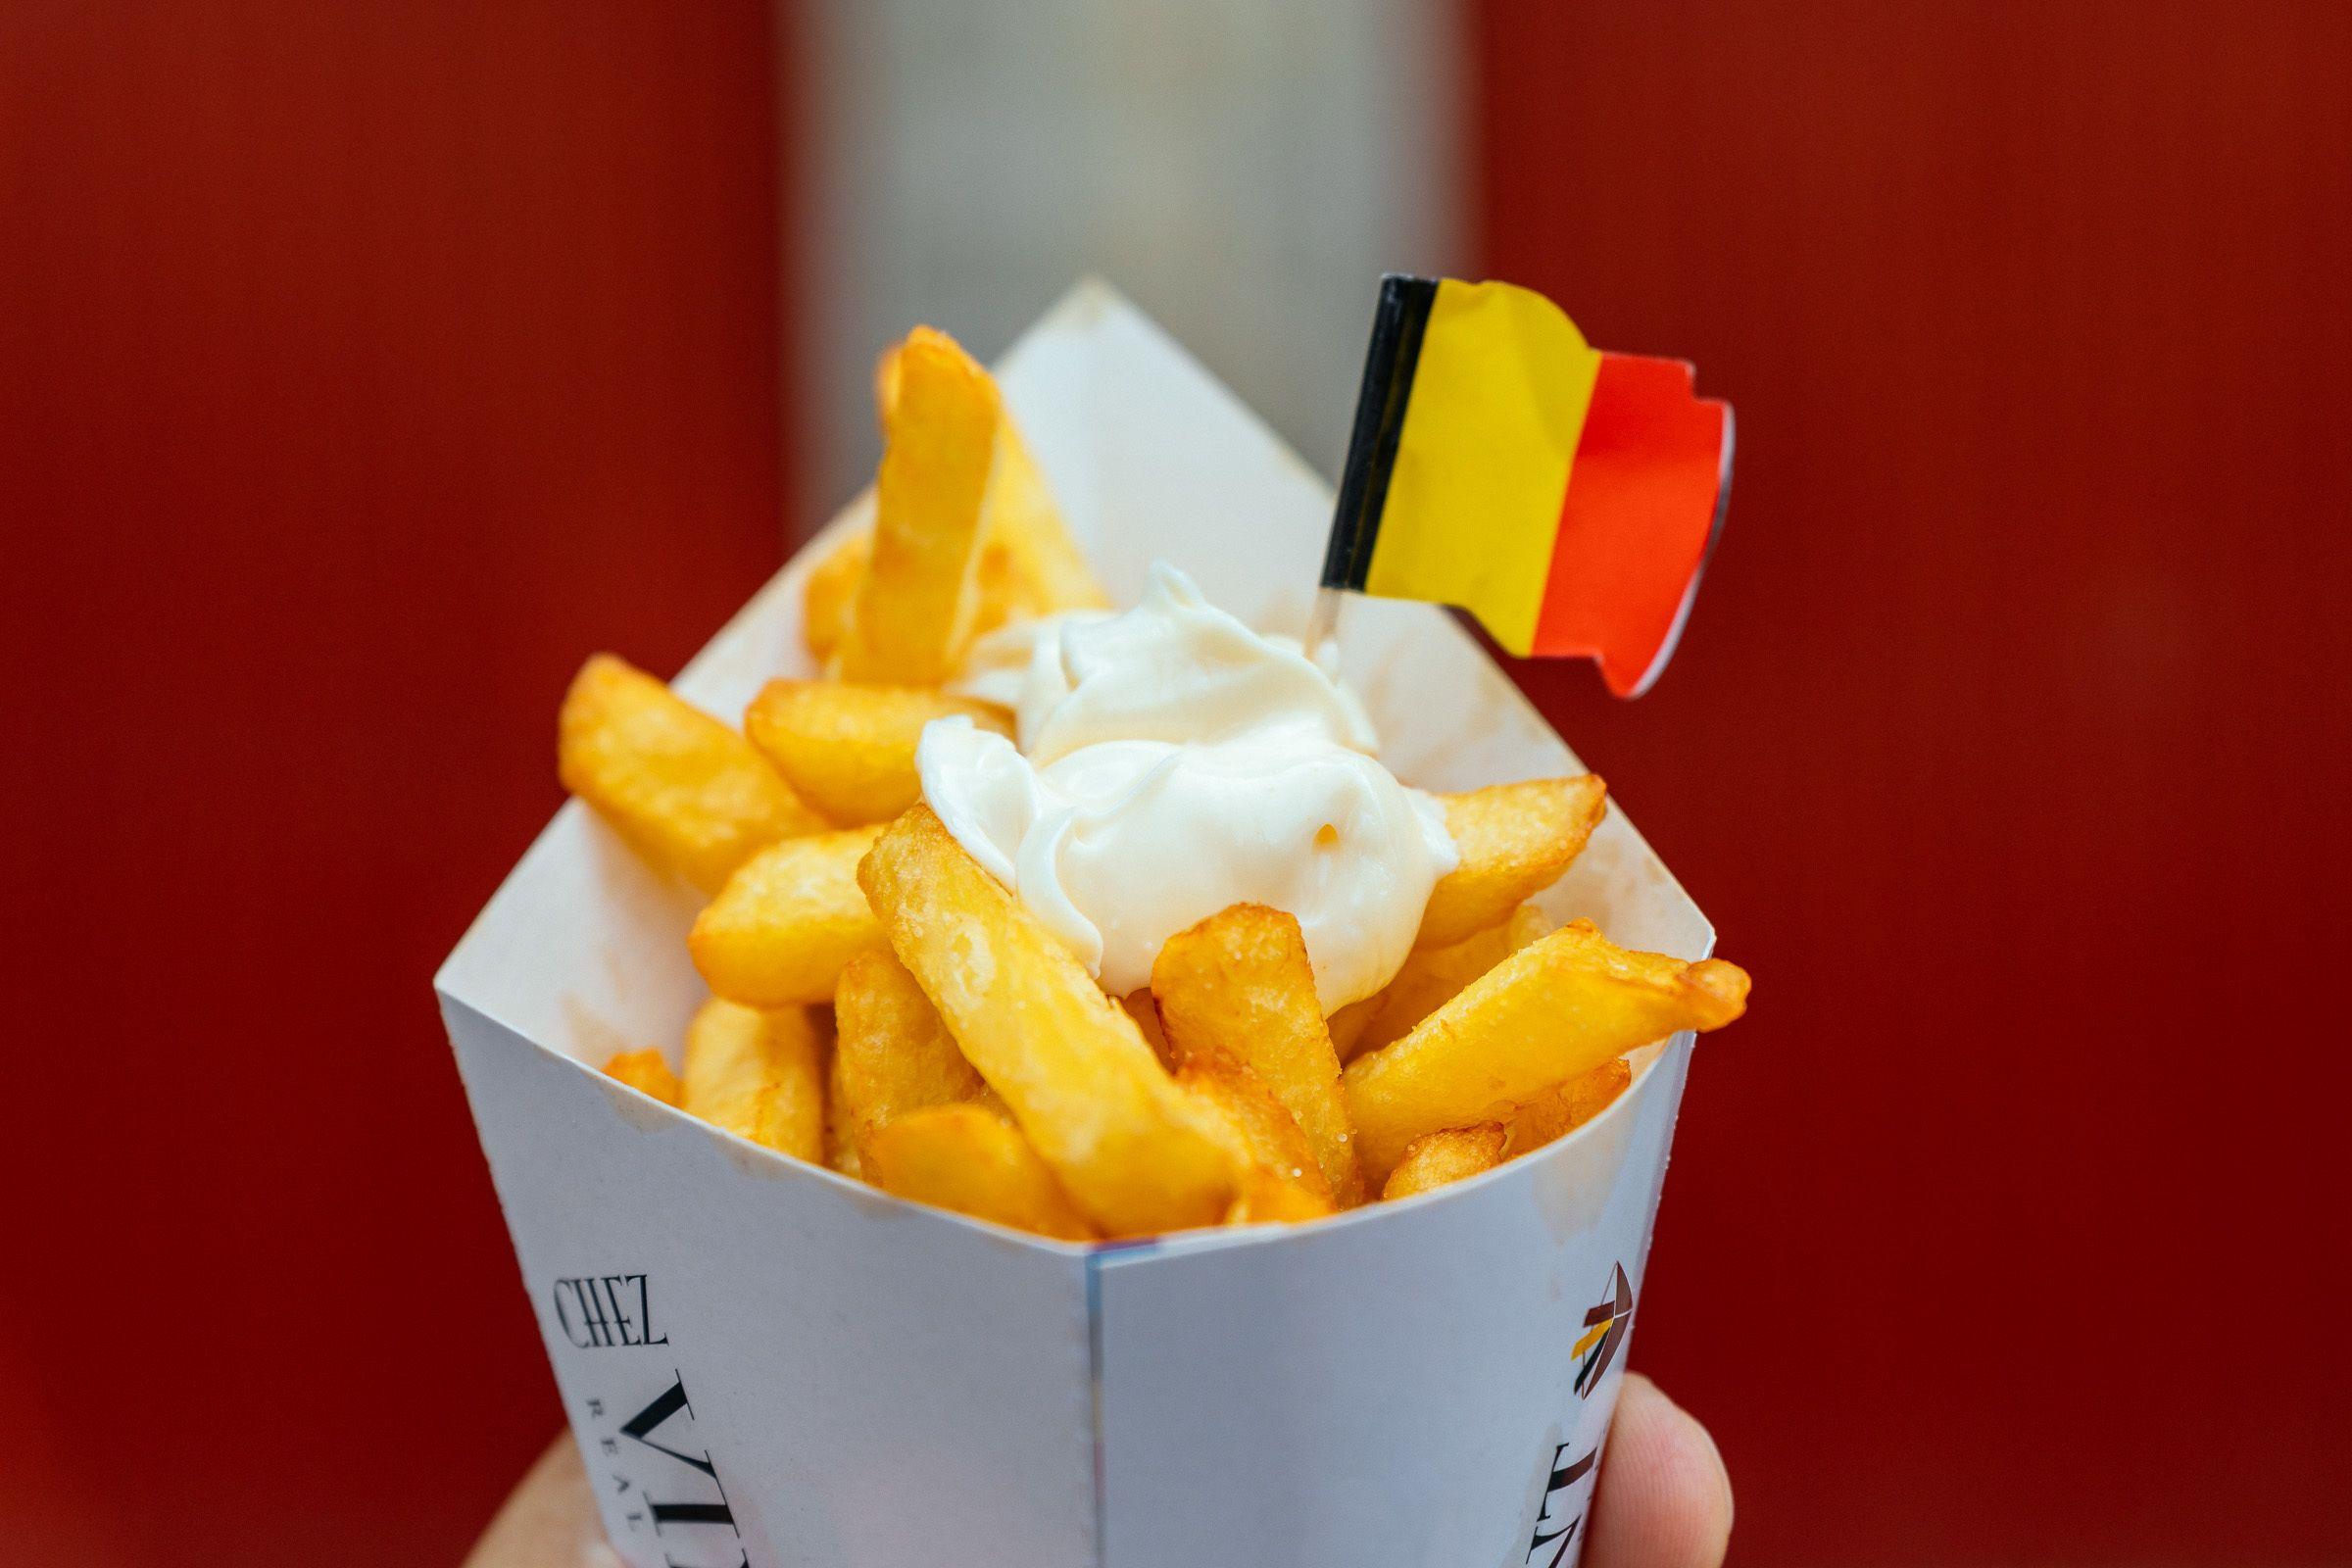 French fries in Bruges